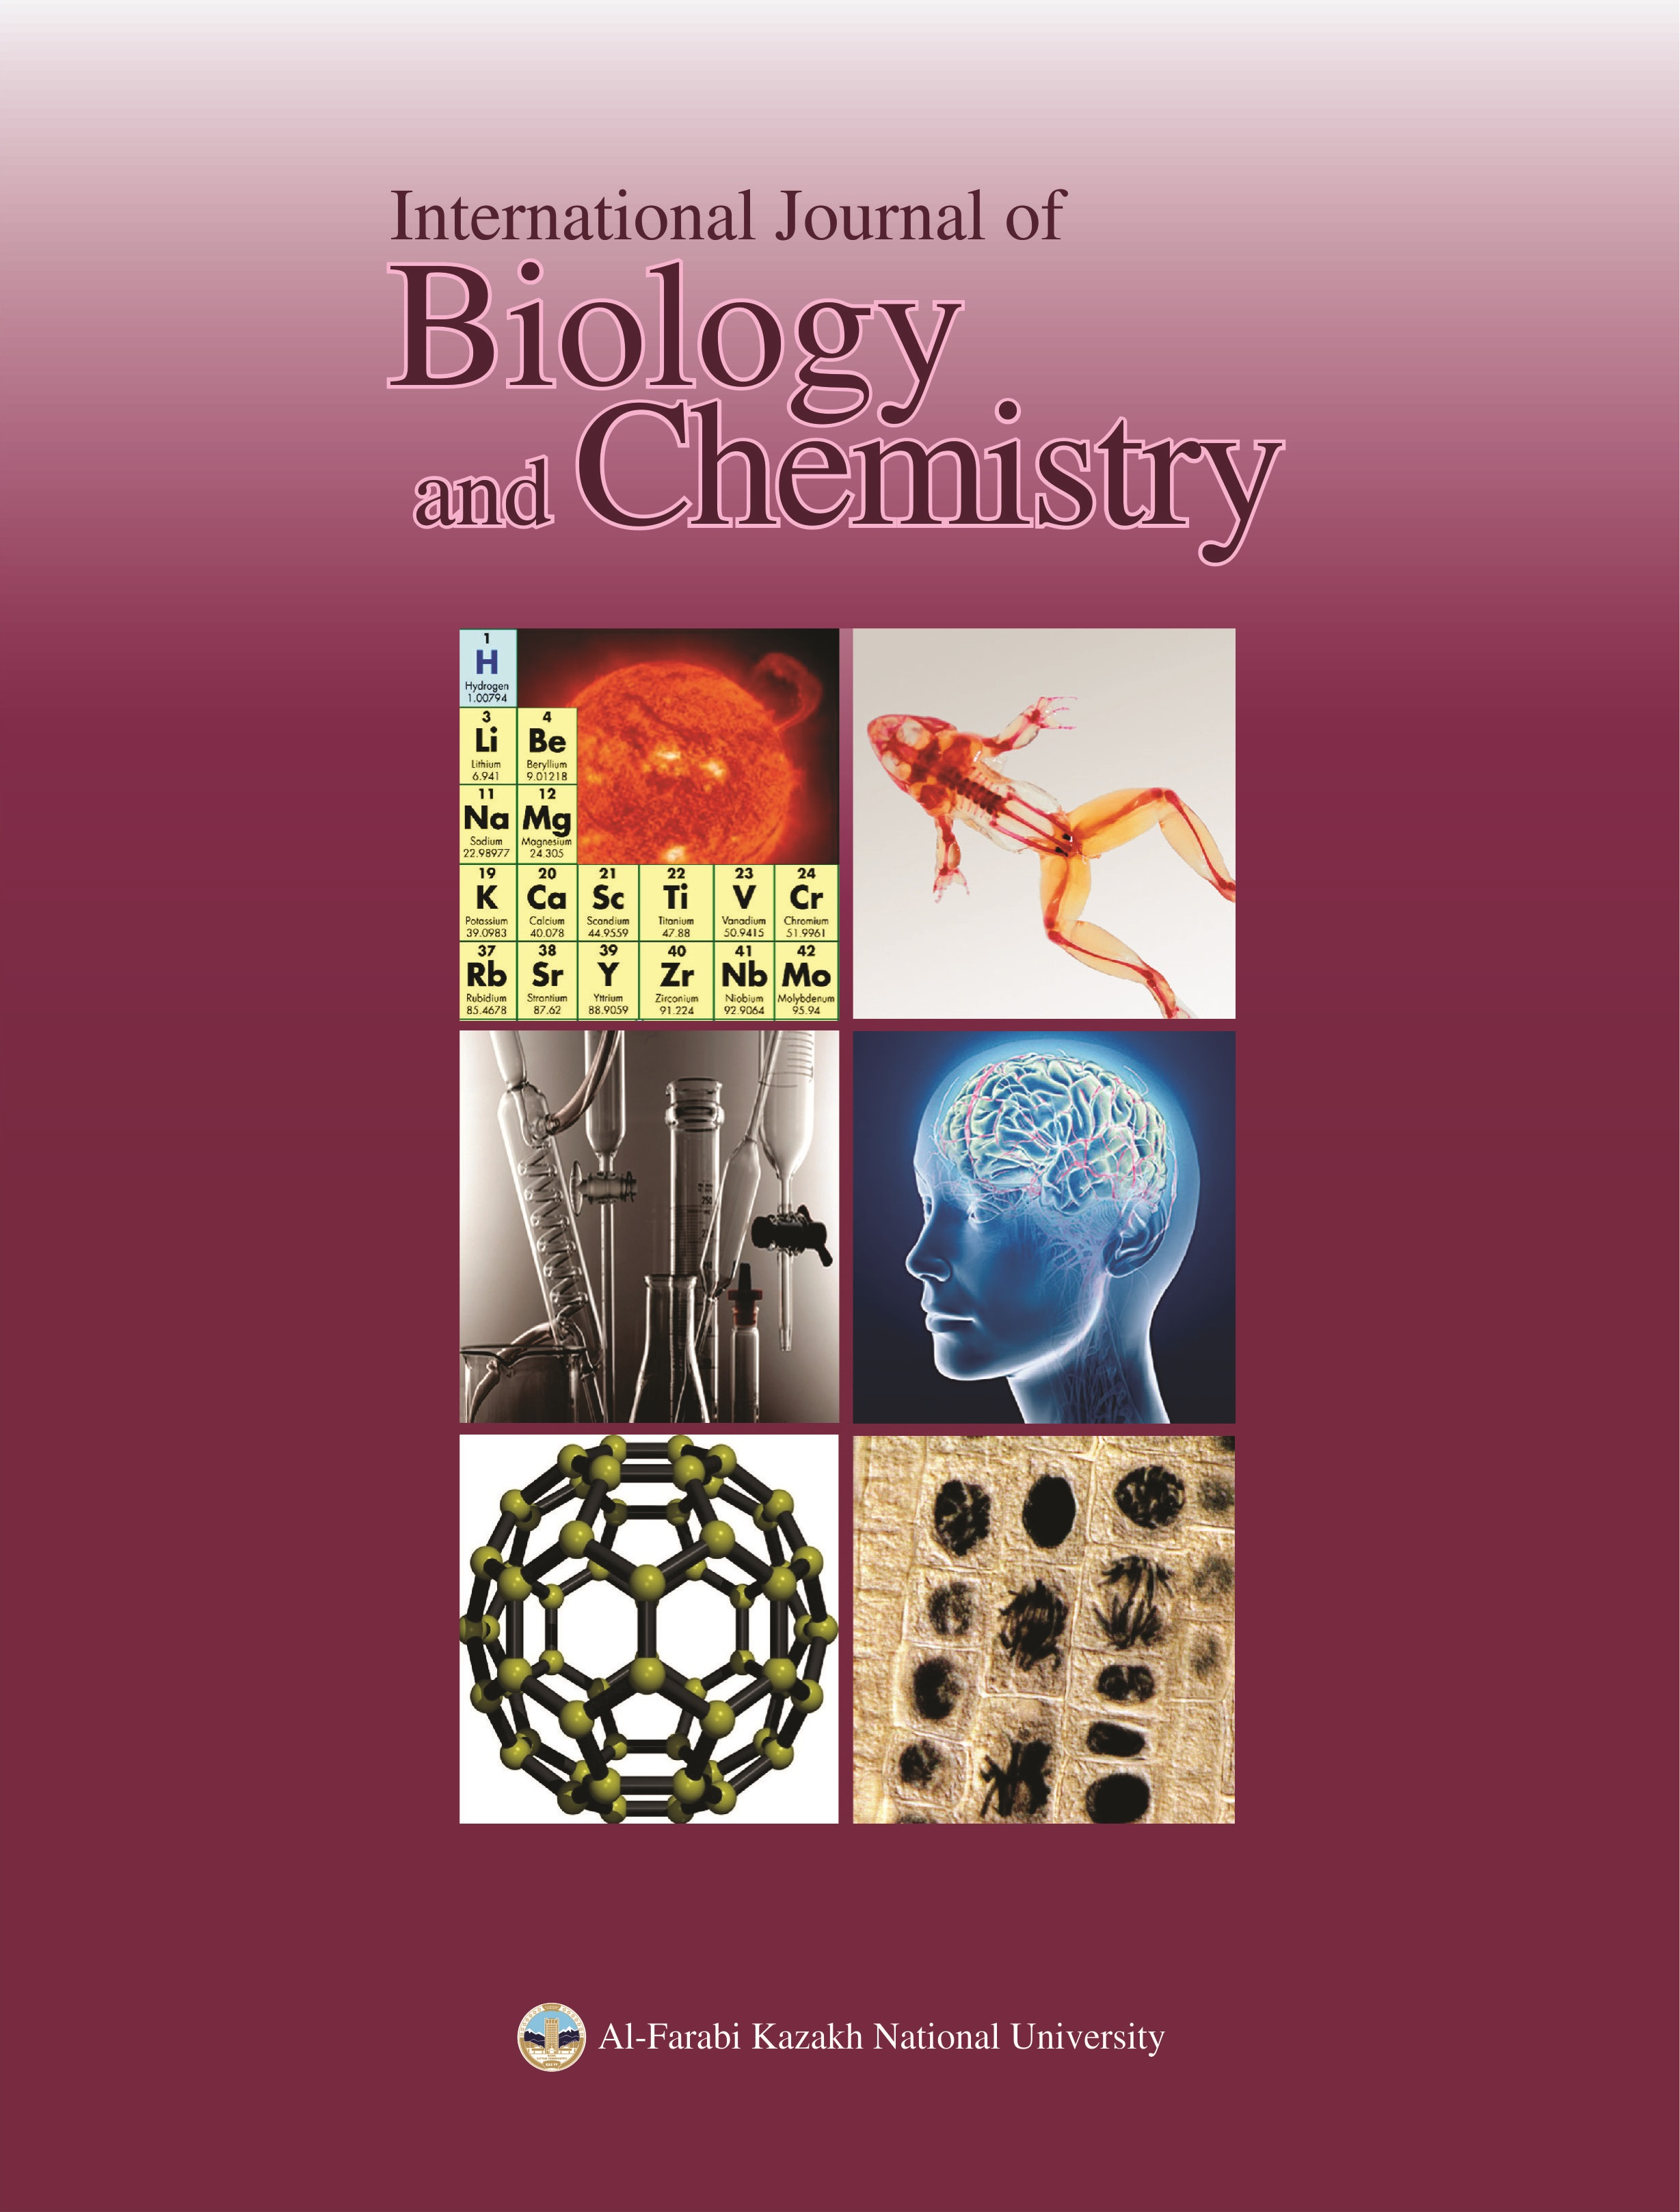 View Vol. 5 No. 1 (2013): International Journal of Biology and Chemistry